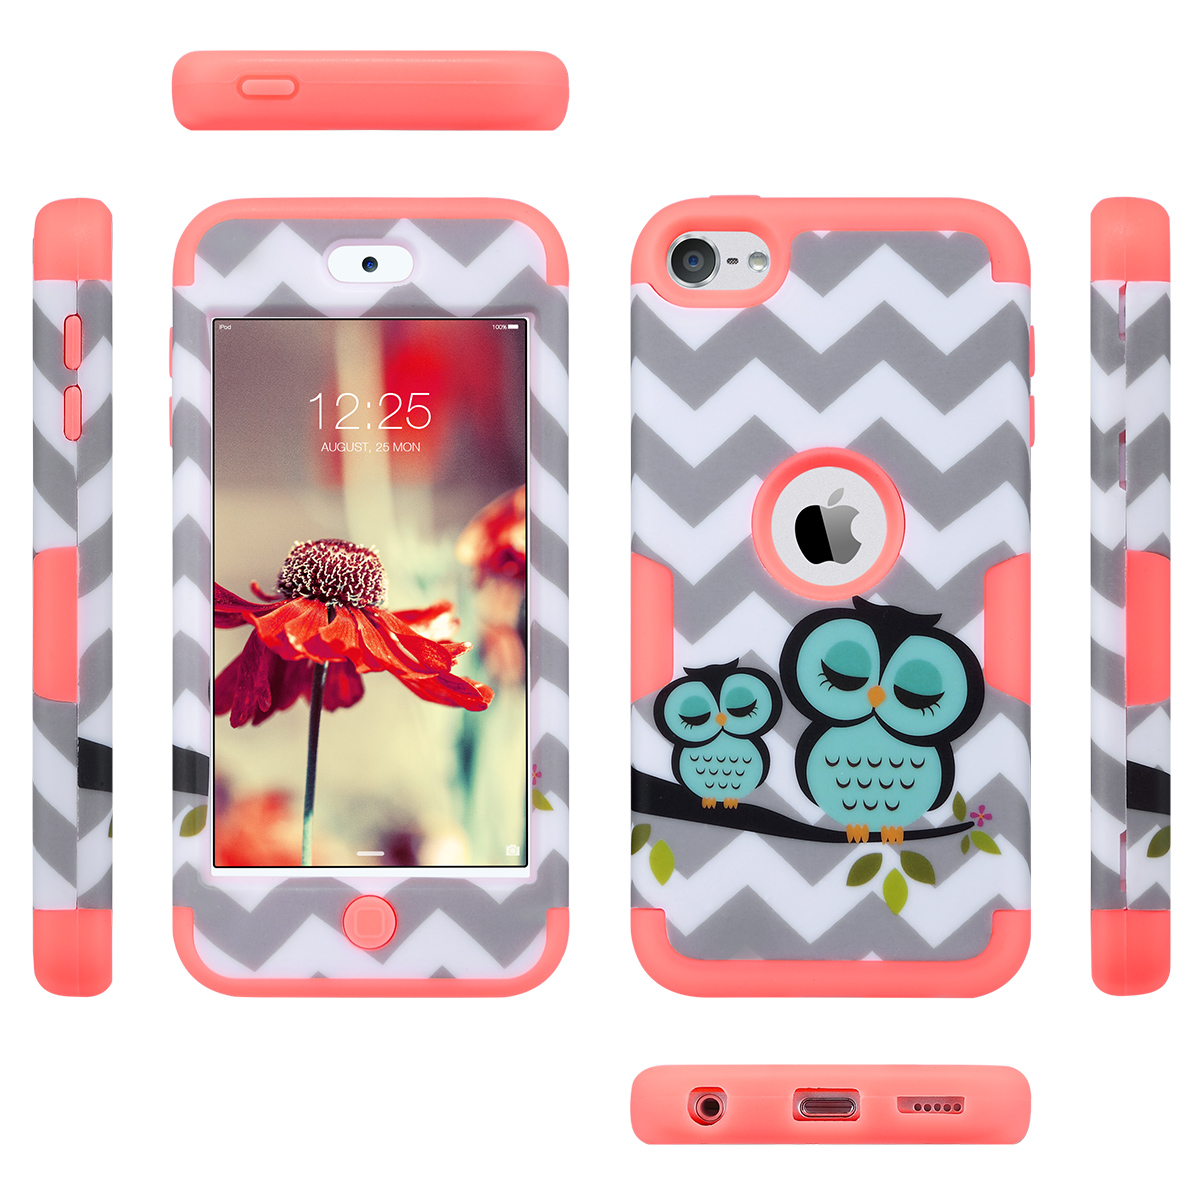 Hybrid-Hard-Protective-Silicon-TPU-Case-for-Apple-iPod-Touch-5-6th-Generation thumbnail 137